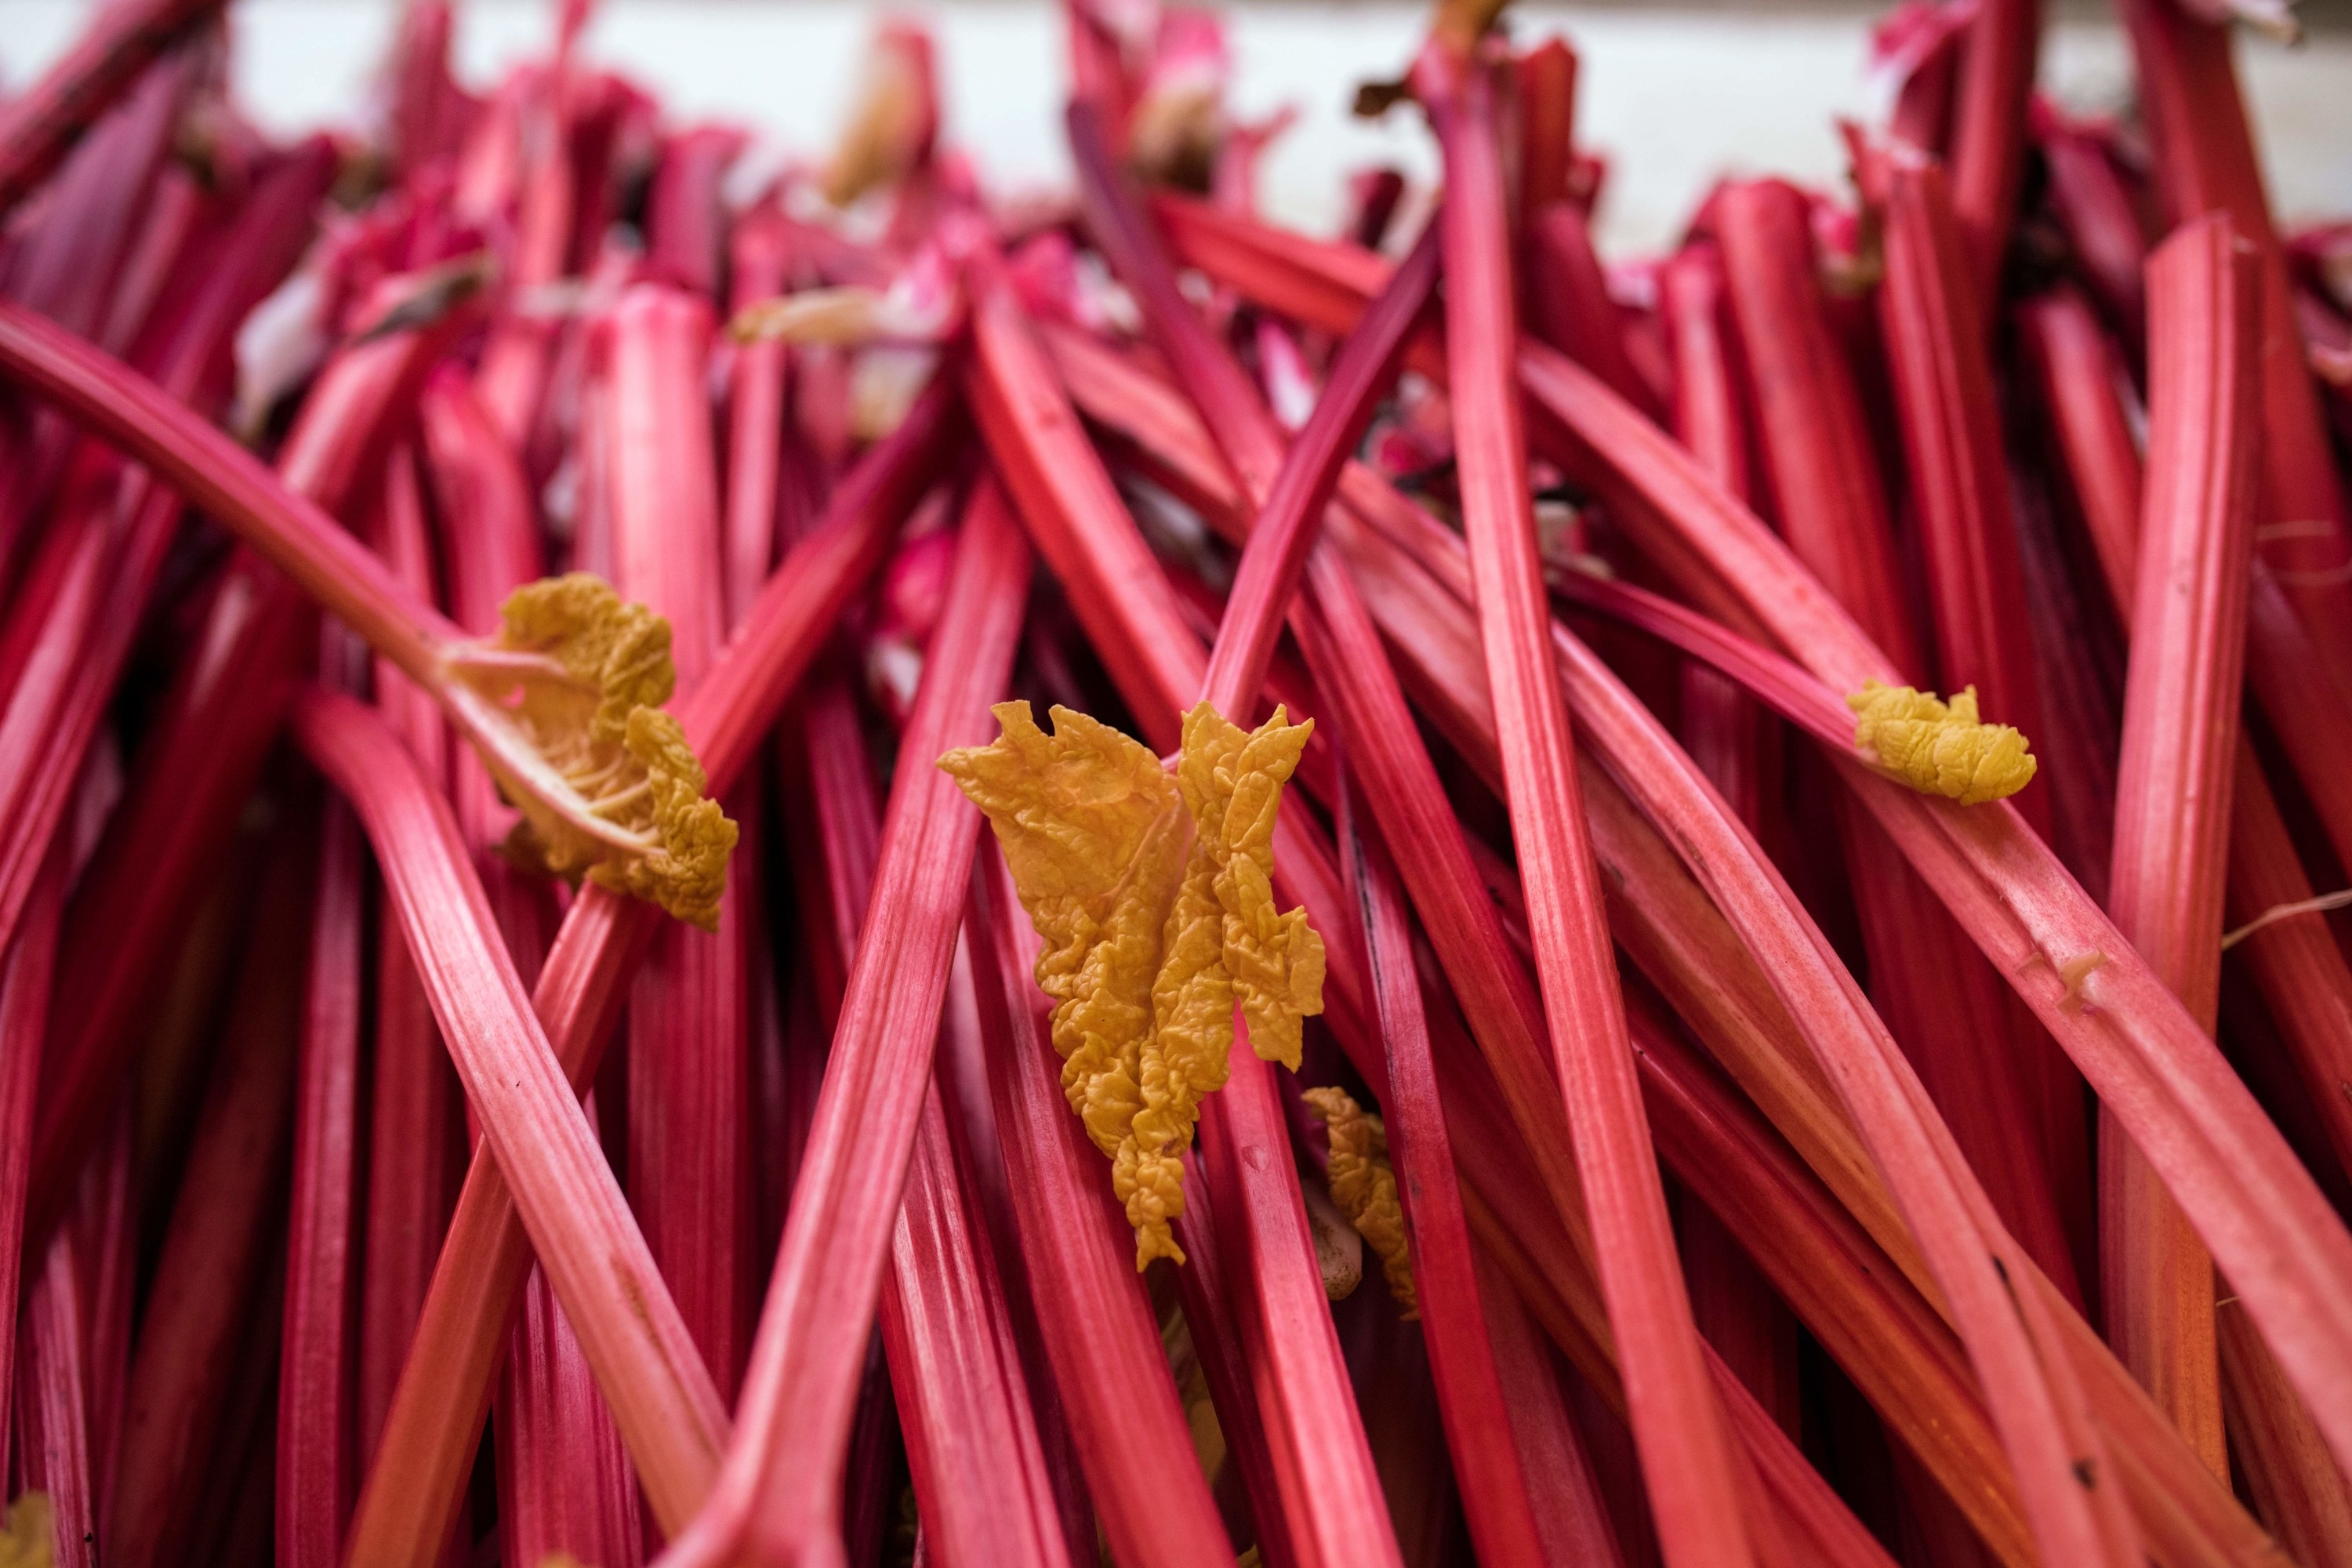 A pile of fresh rhubarb with leaves visible